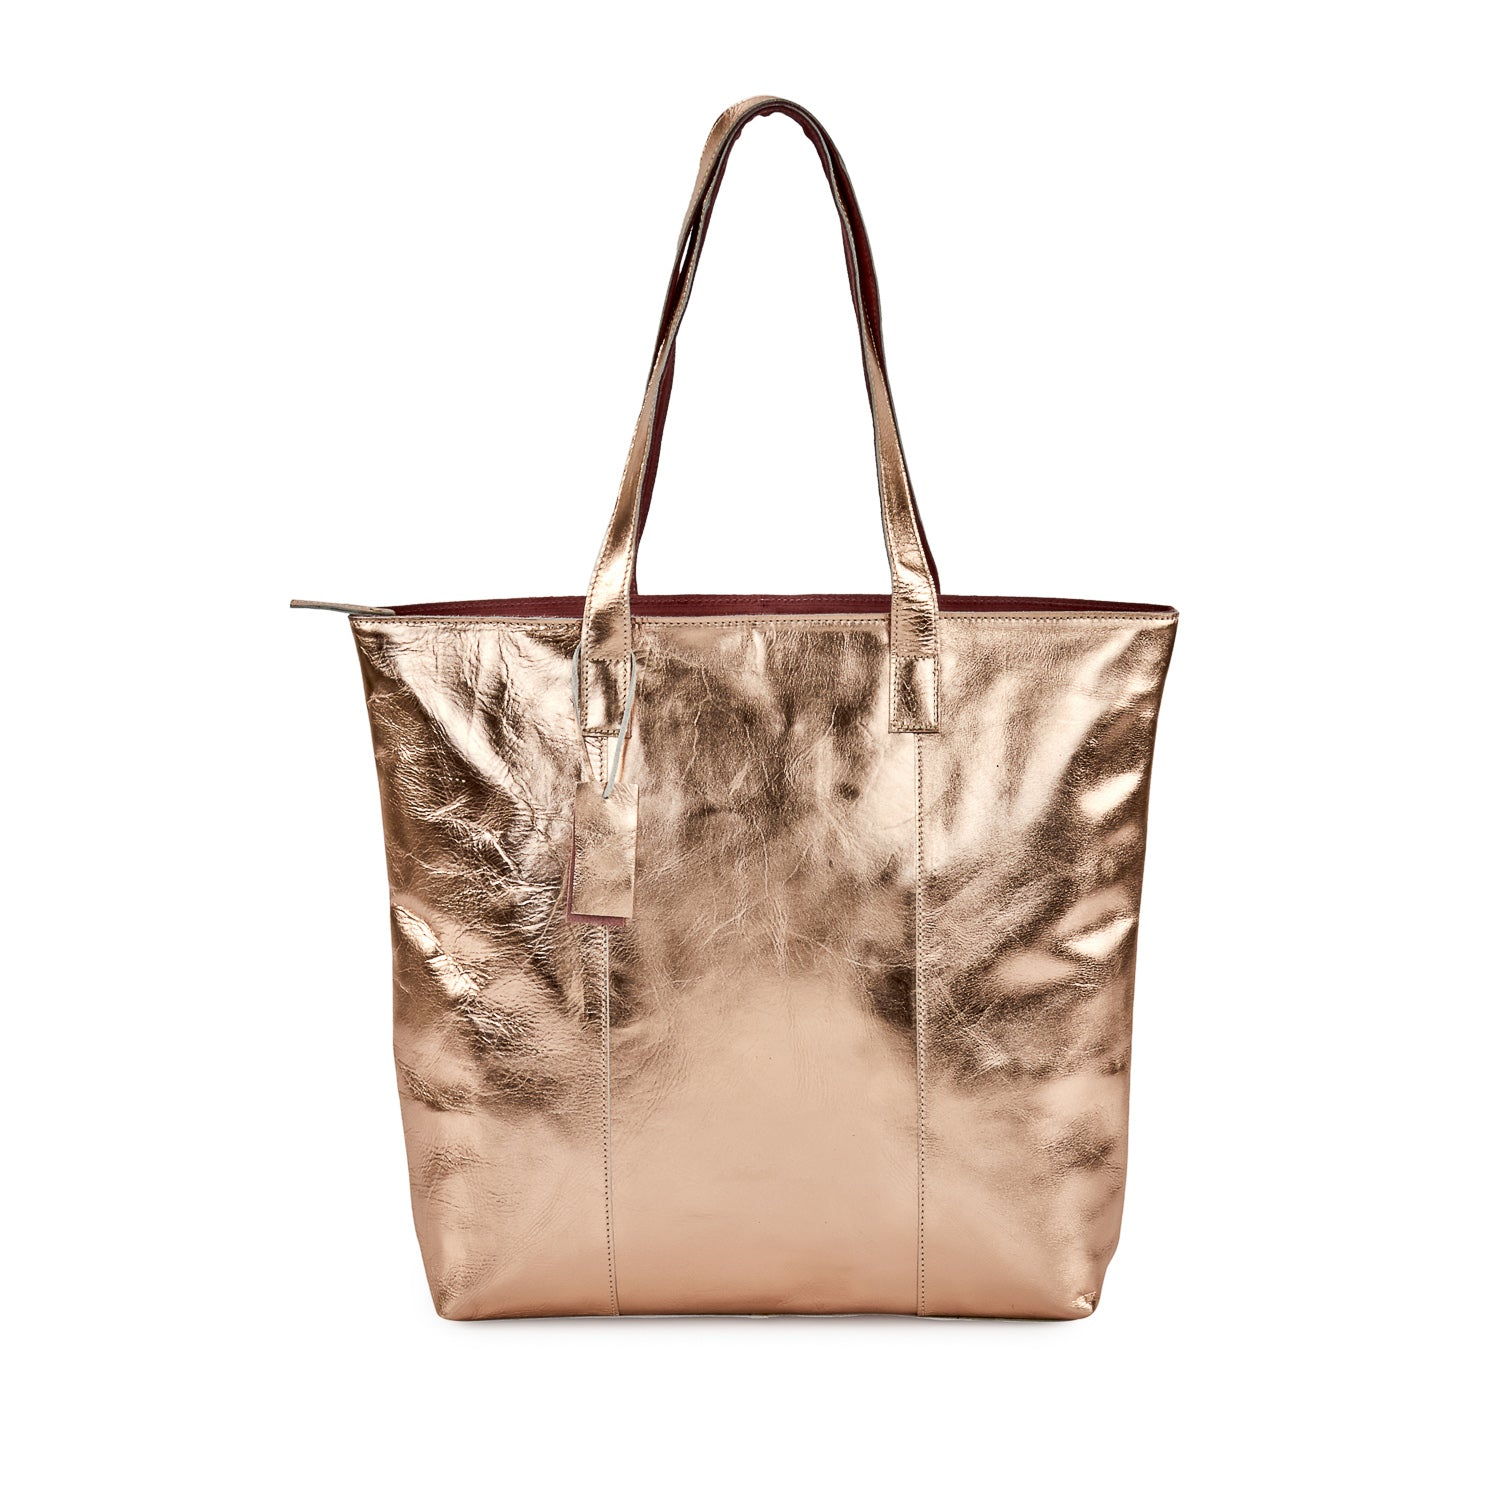 Metallic Magpie Zip Top Tote Bag #LB86 Rose